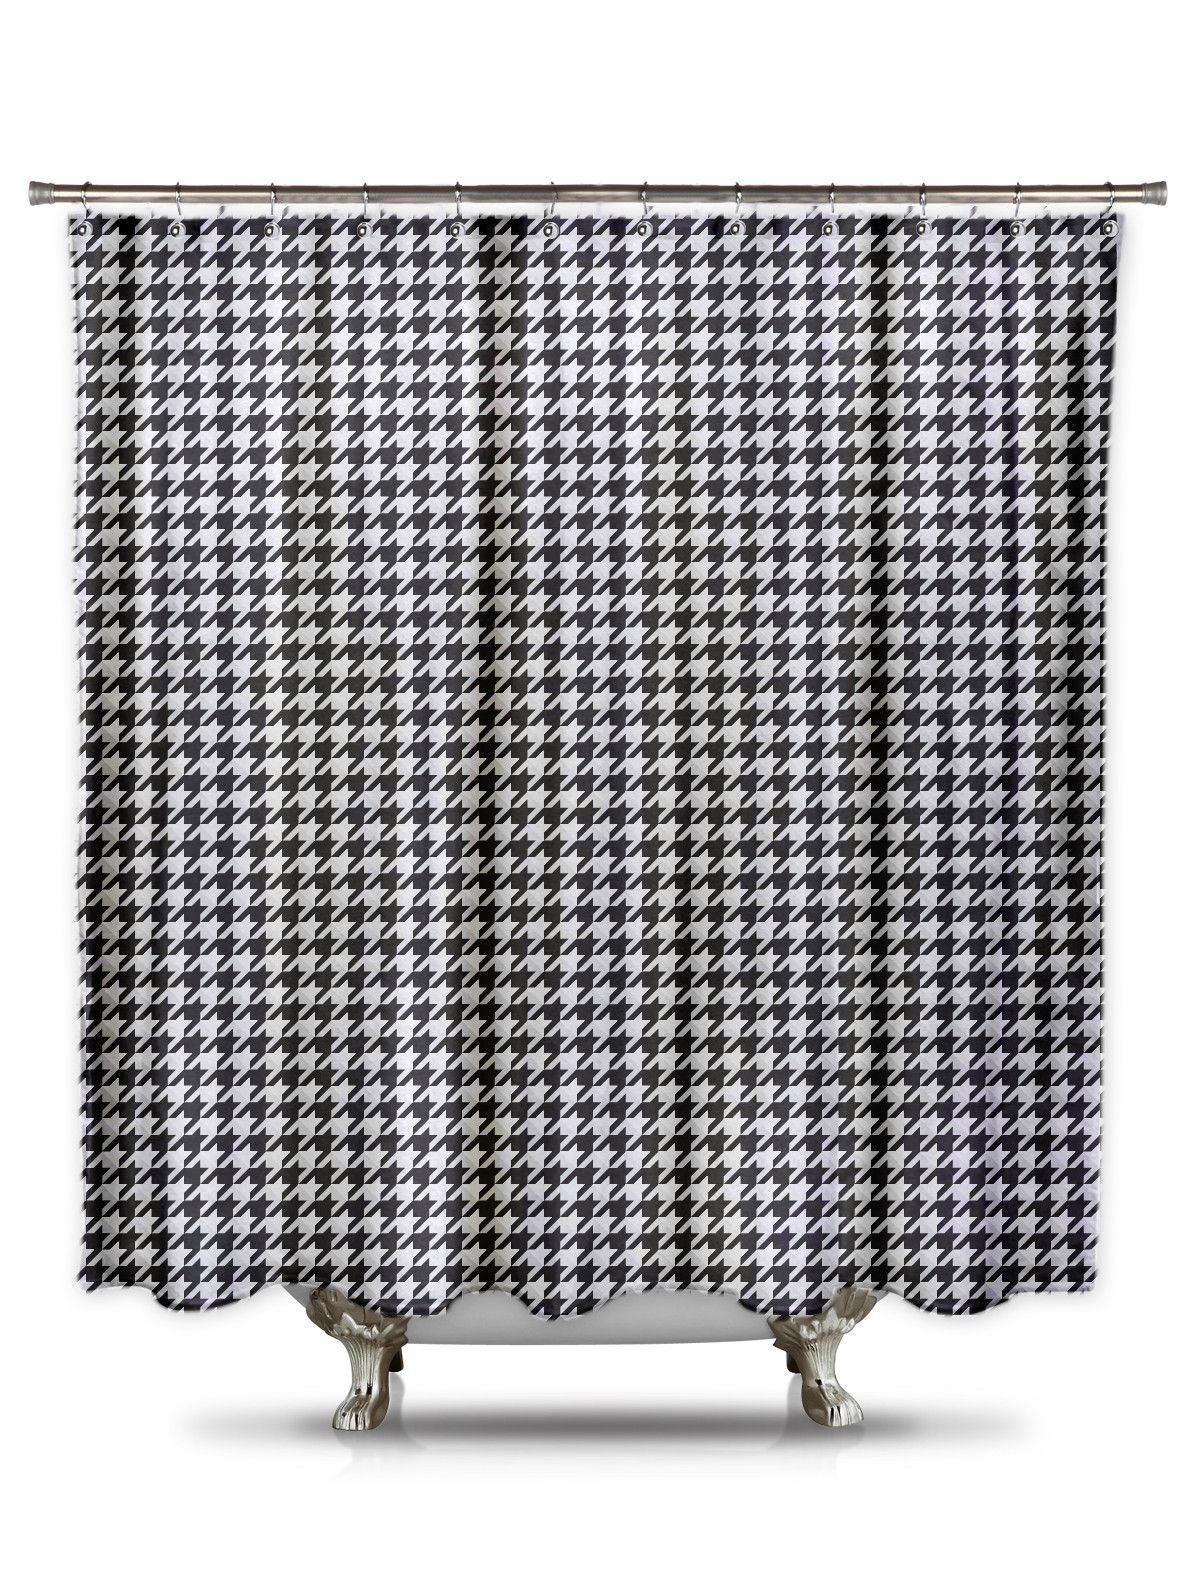 Black And White Houndstooth Shower Curtain Sale Fabric Shower